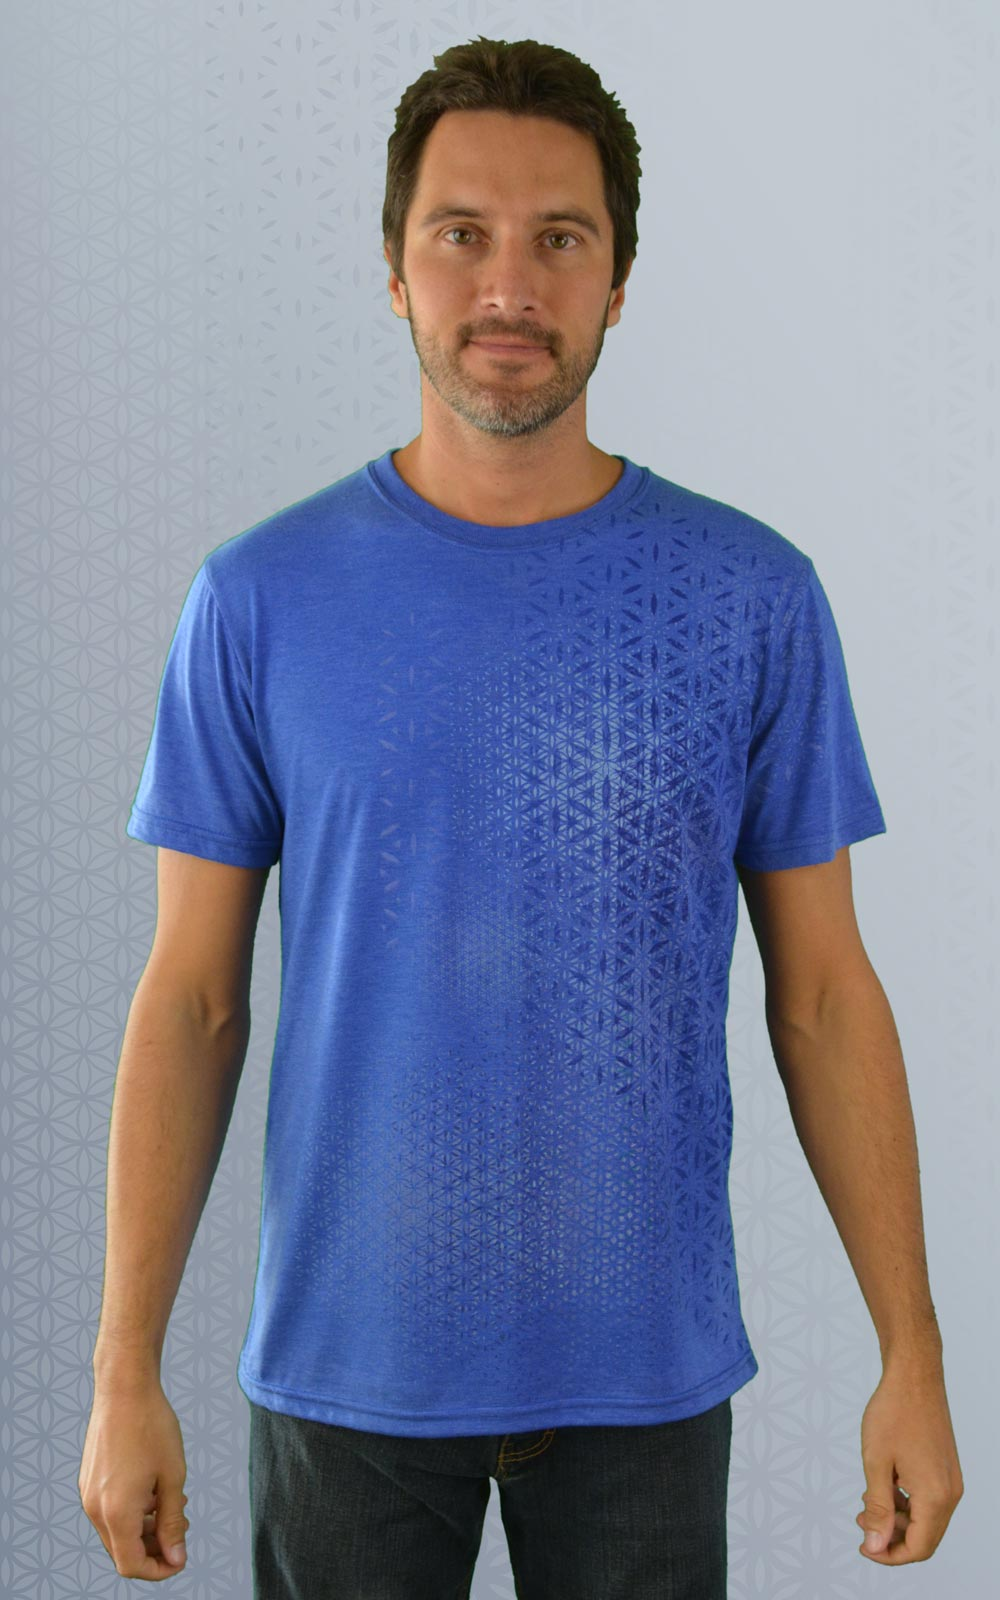 Men 39 s bamboo t shirt made in canada myriad inkspoon for Bamboo t shirt printing